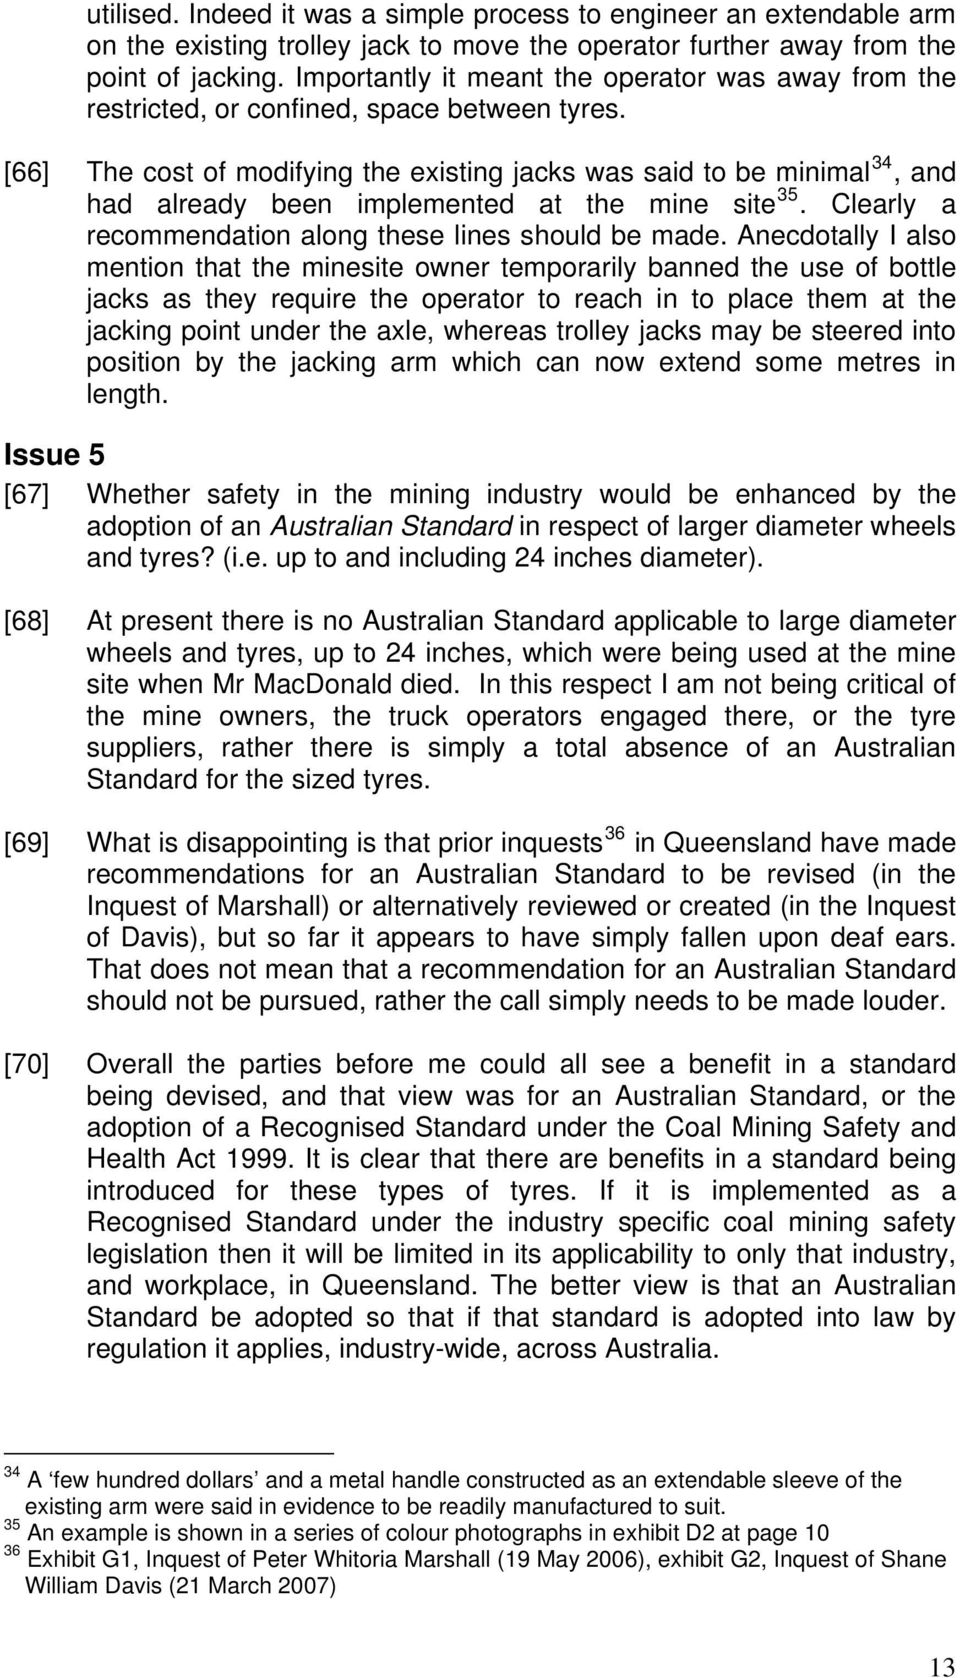 [66] The cost of modifying the existing jacks was said to be minimal 34, and had already been implemented at the mine site 35. Clearly a recommendation along these lines should be made.